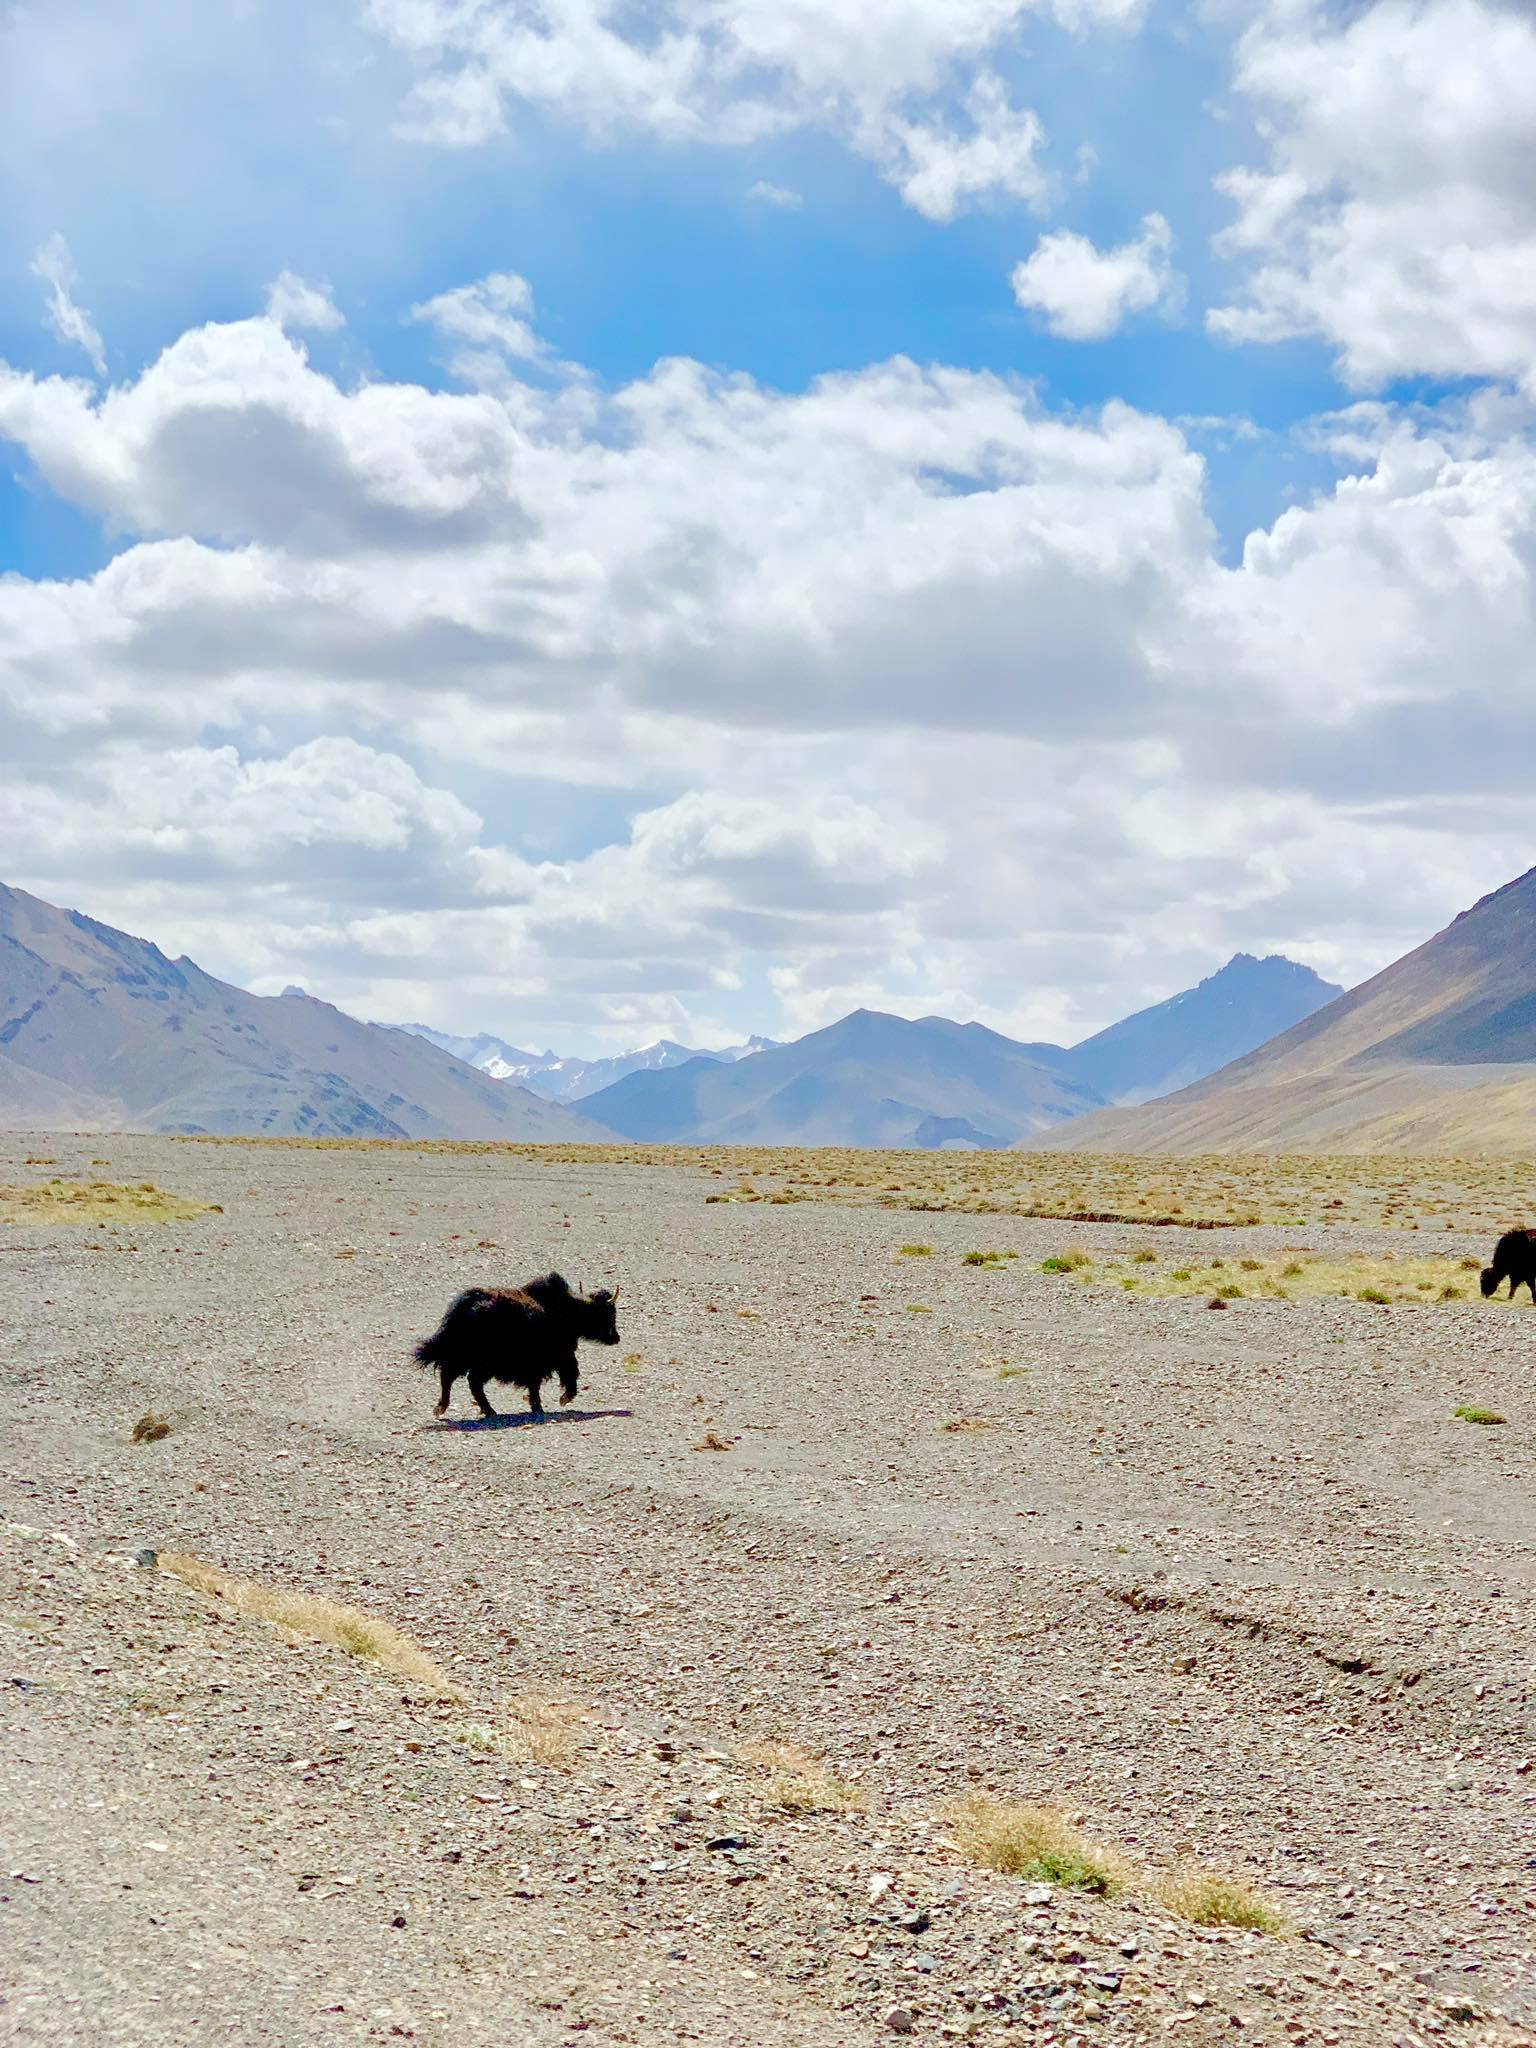 Kach Solo Travels in 2019 Last 8 days of Pamir Highway roadtrip with Paramount Journey.jpg